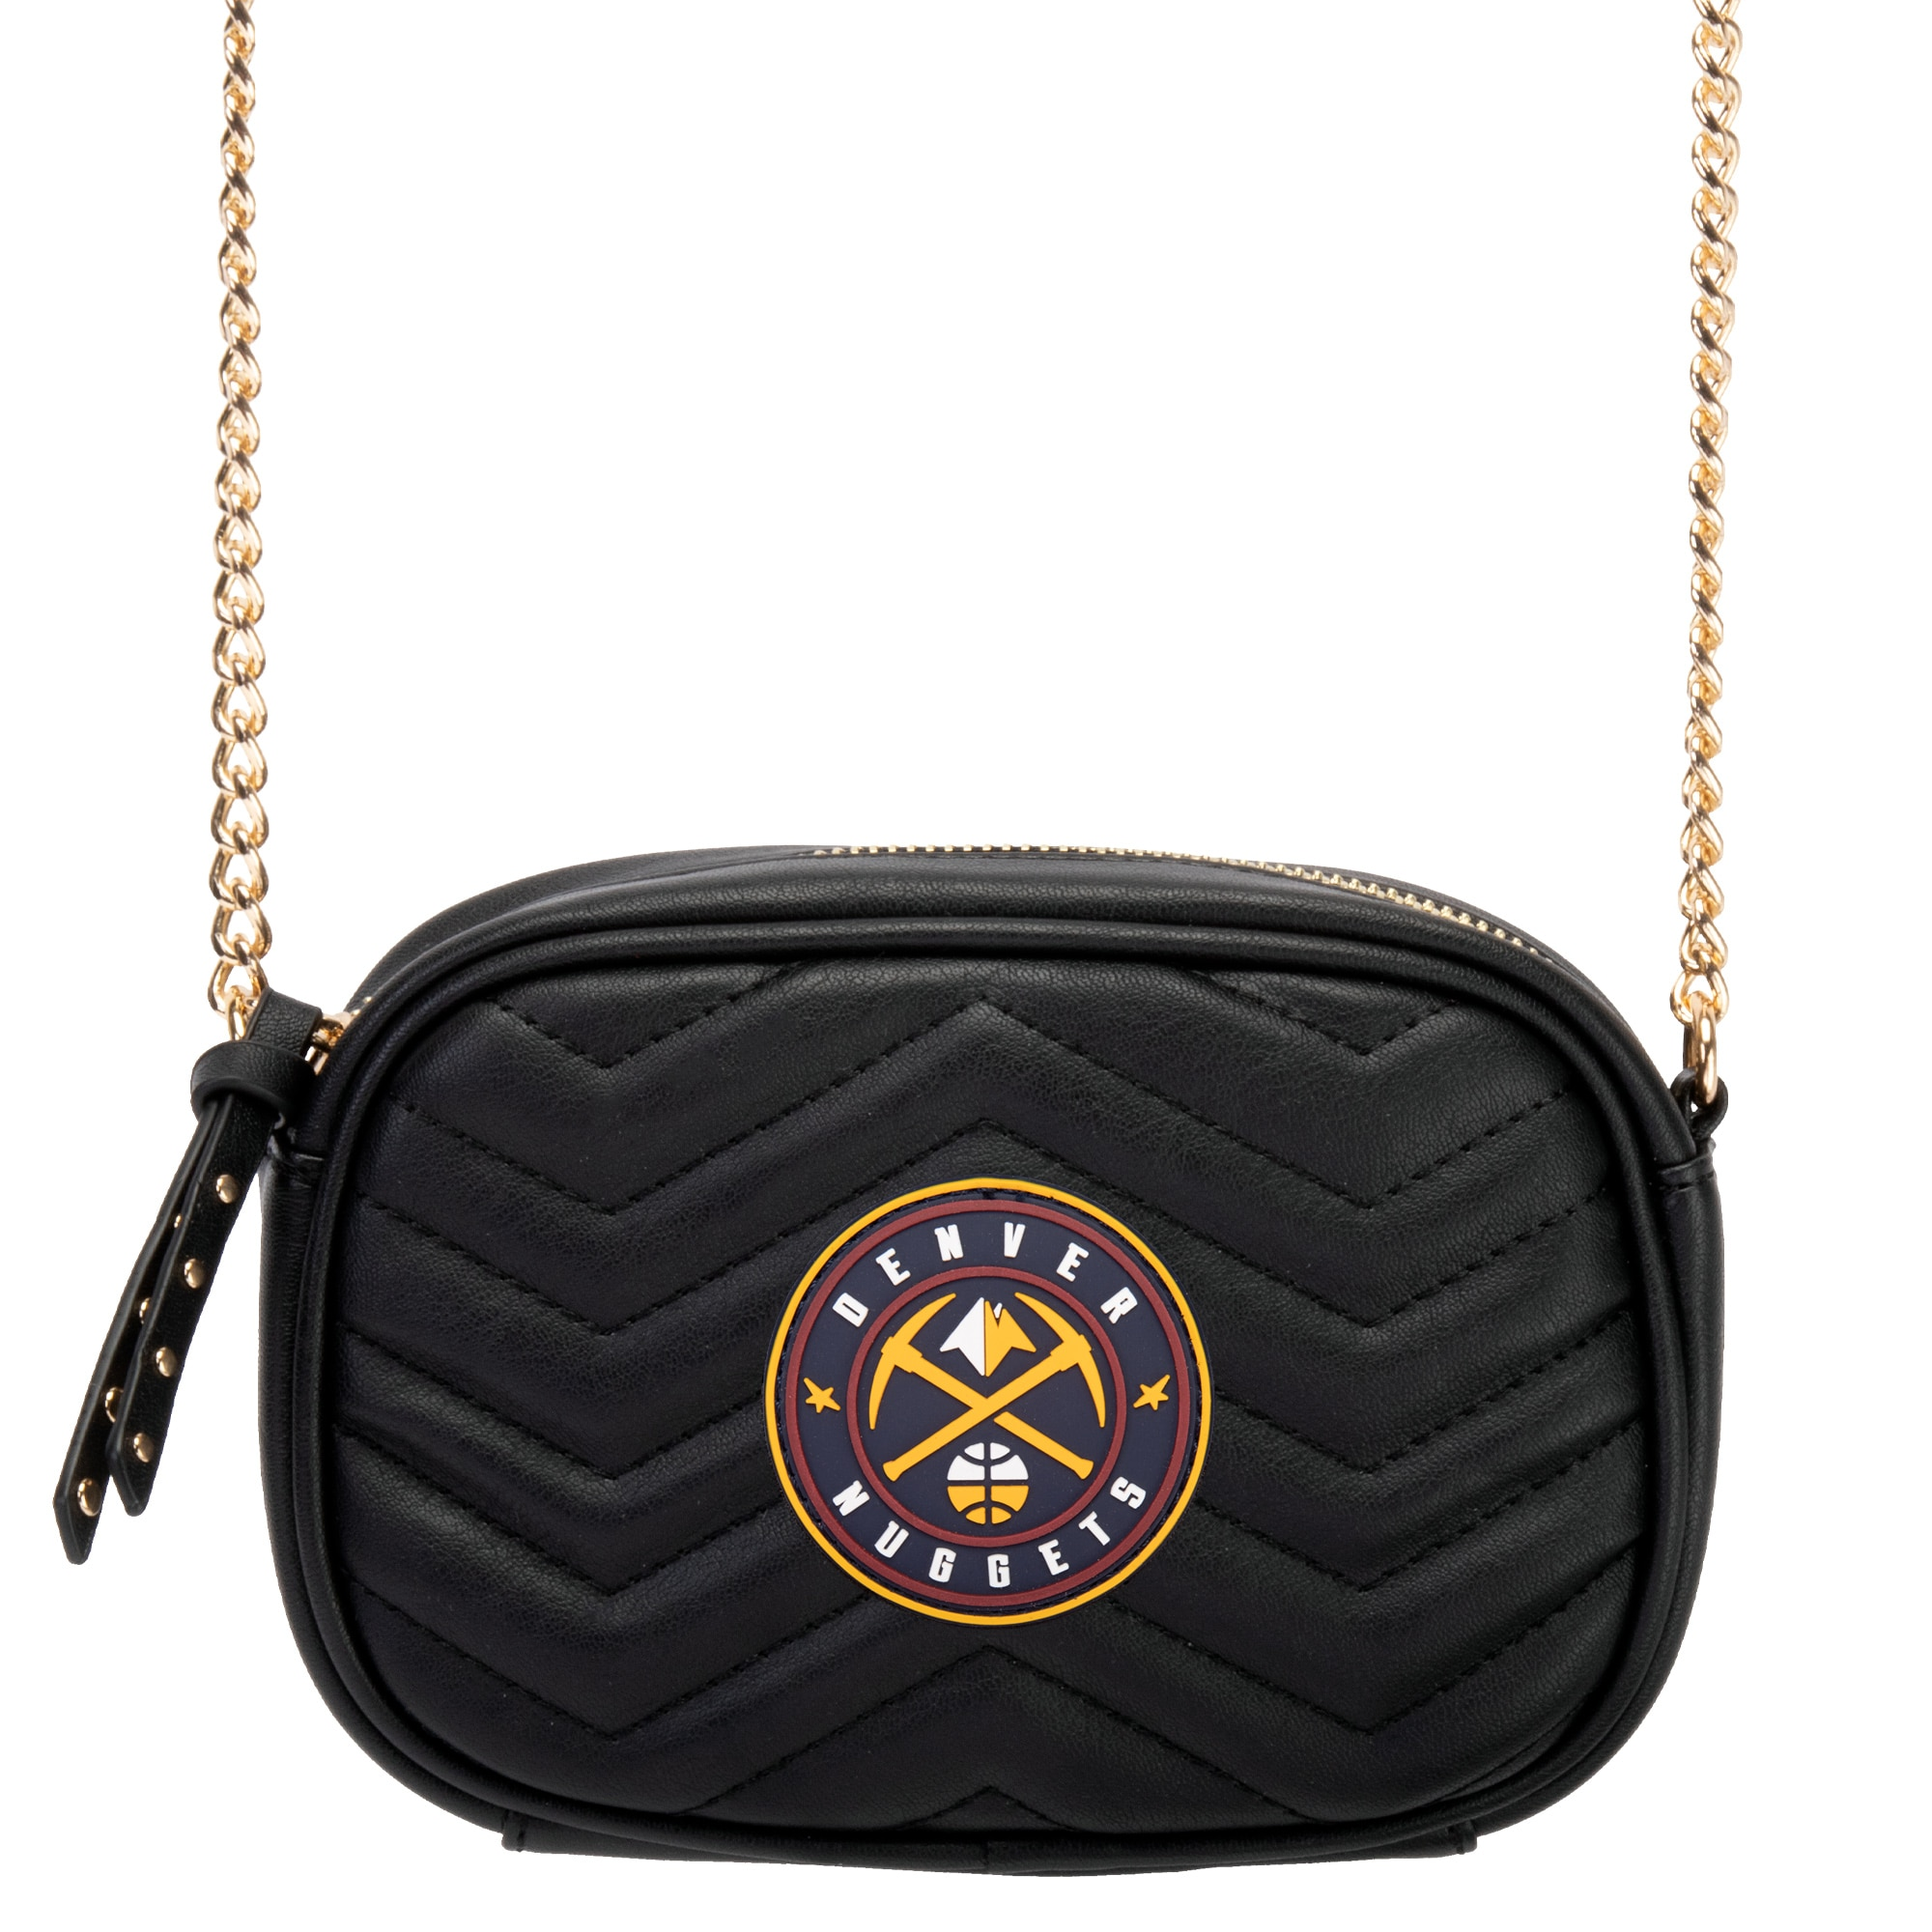 Denver Nuggets Women's Crossbody Bag - Black